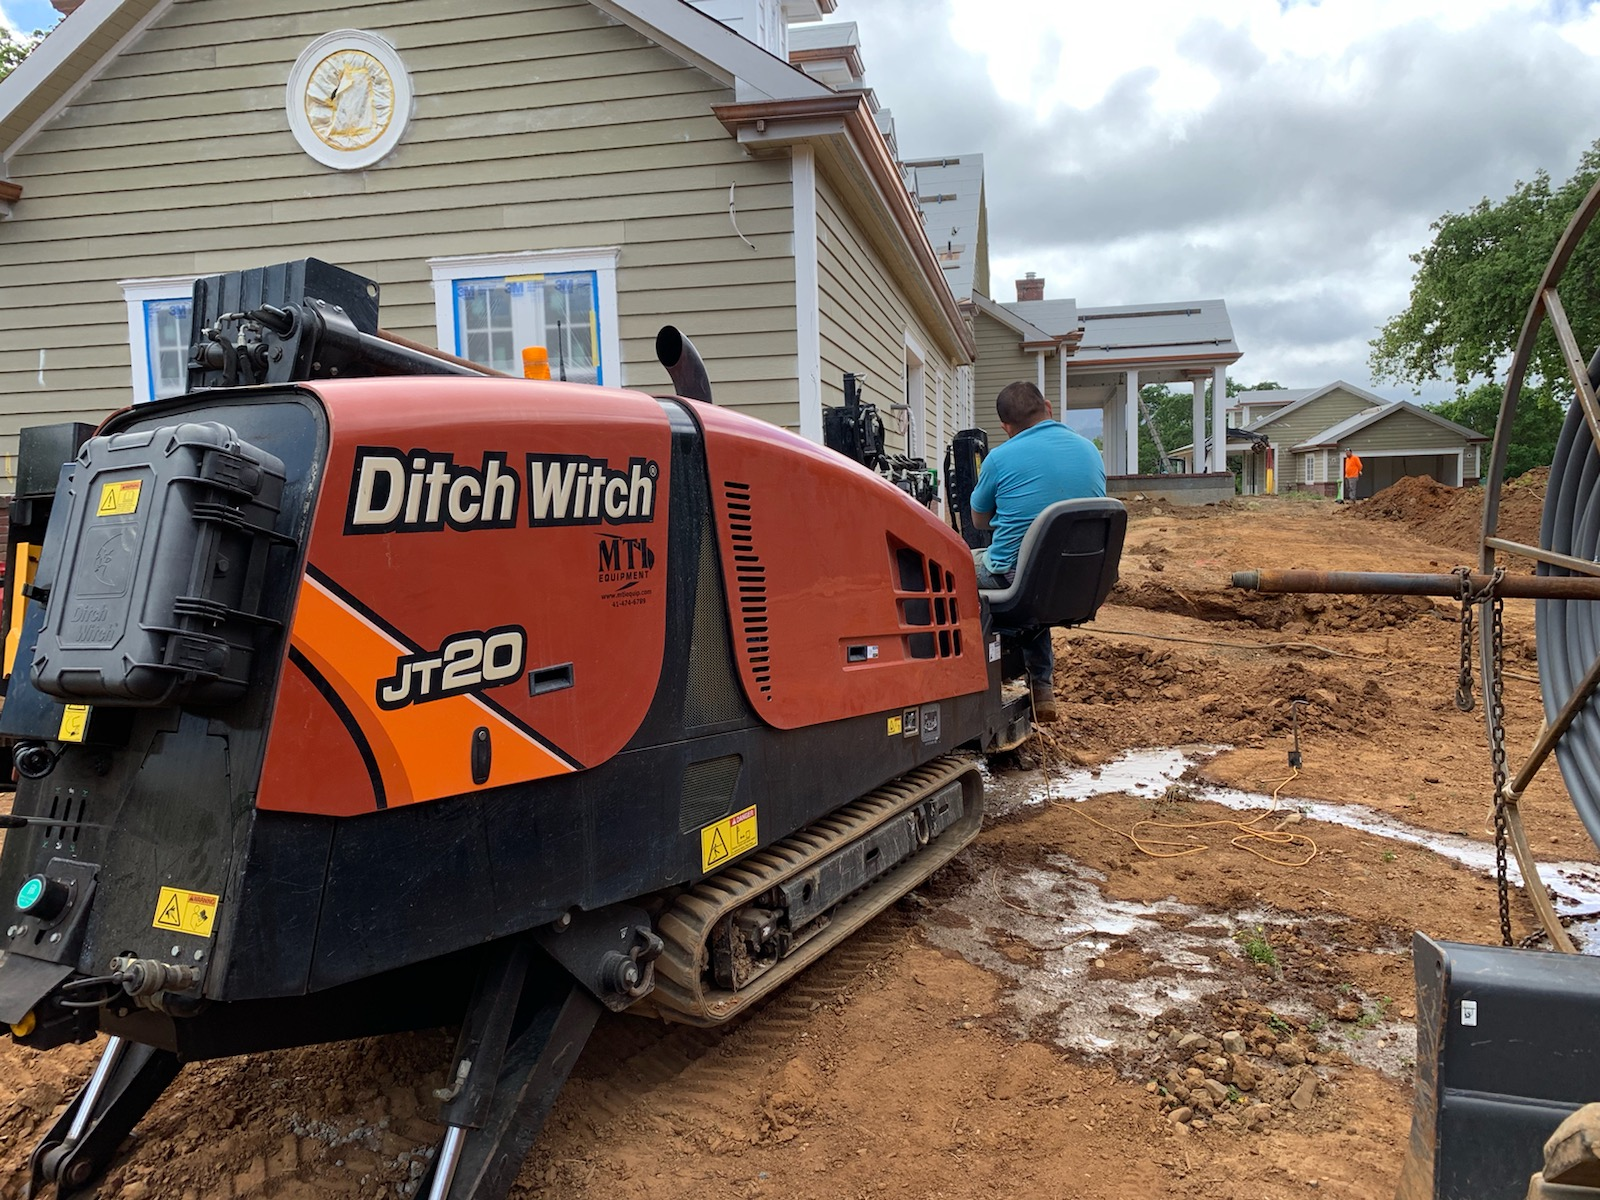 APEX DIRECTIONAL DRILLING — CORE ENGINEERING INC